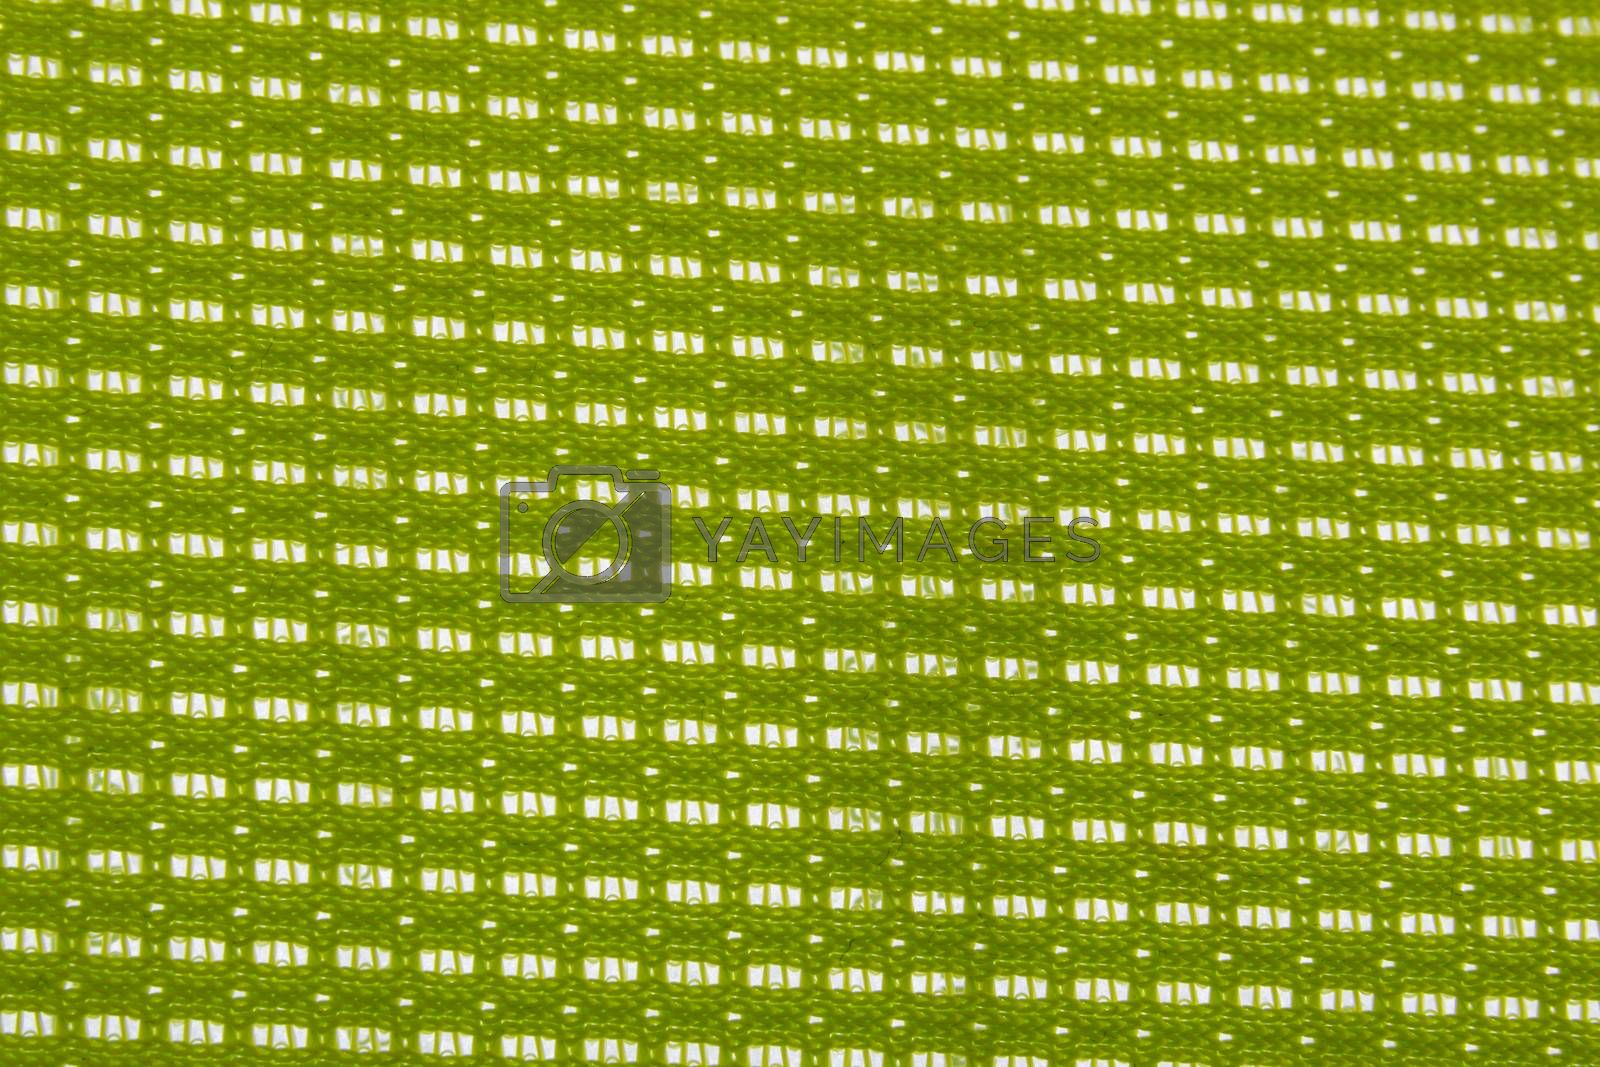 Green color plastic background pattern texture.